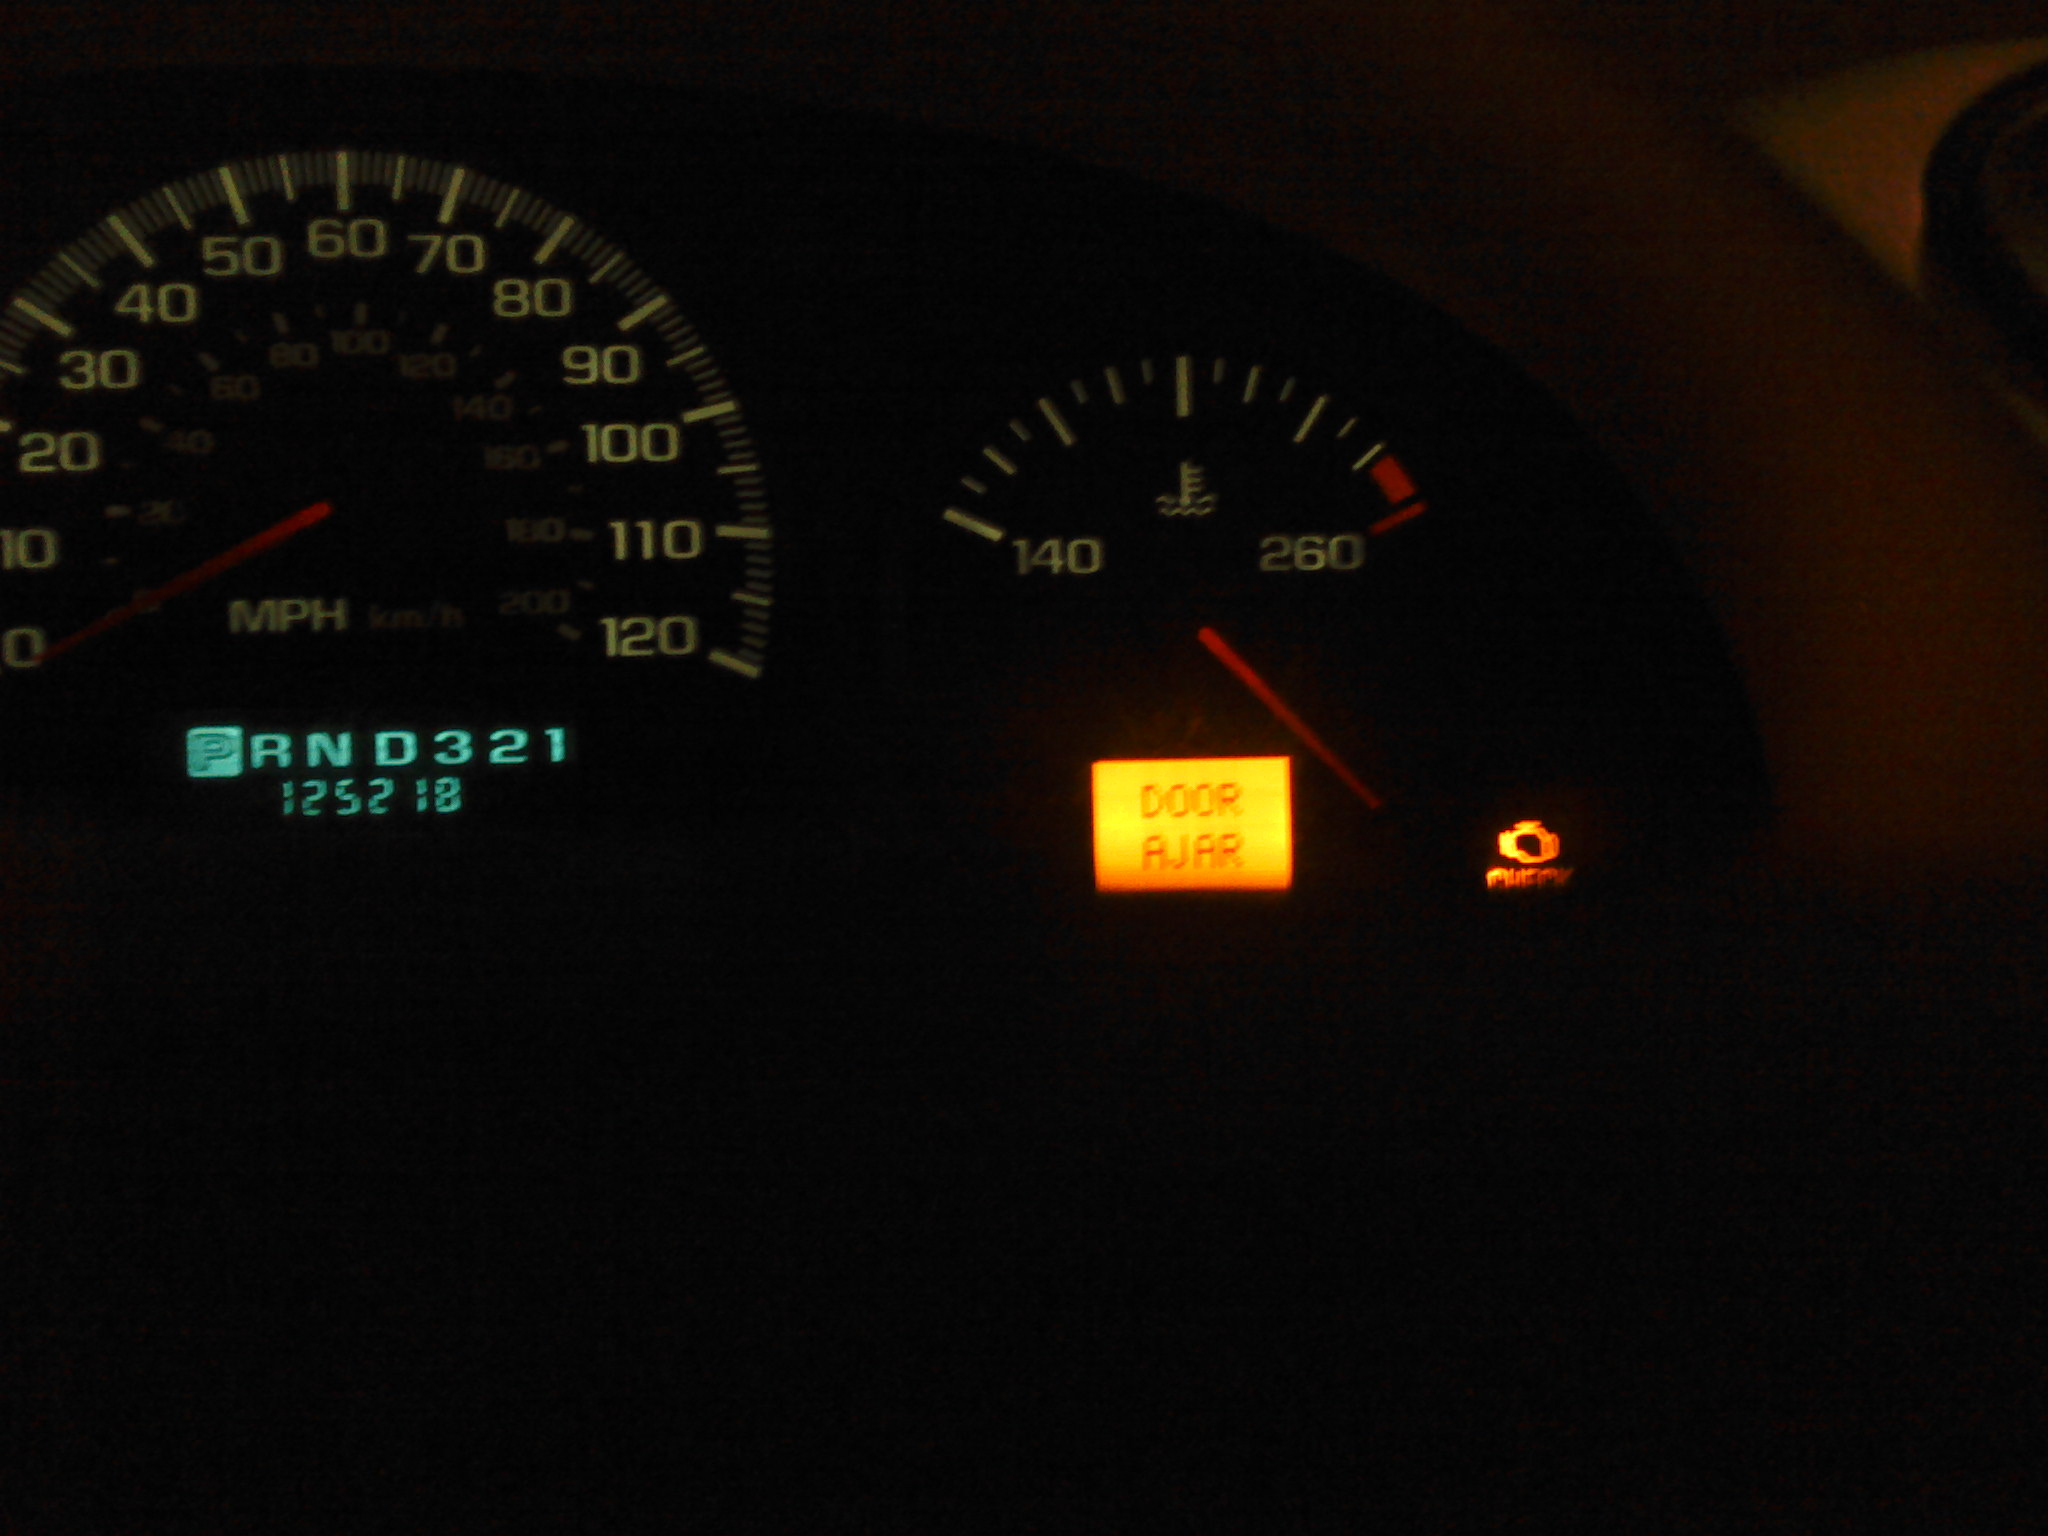 Astra H Retrofit Afl Headlights furthermore Piping Diagram Symbols Union further Alt install moreover Showthread likewise O2 Sensor Wiring. on ignition switch wiring diagram